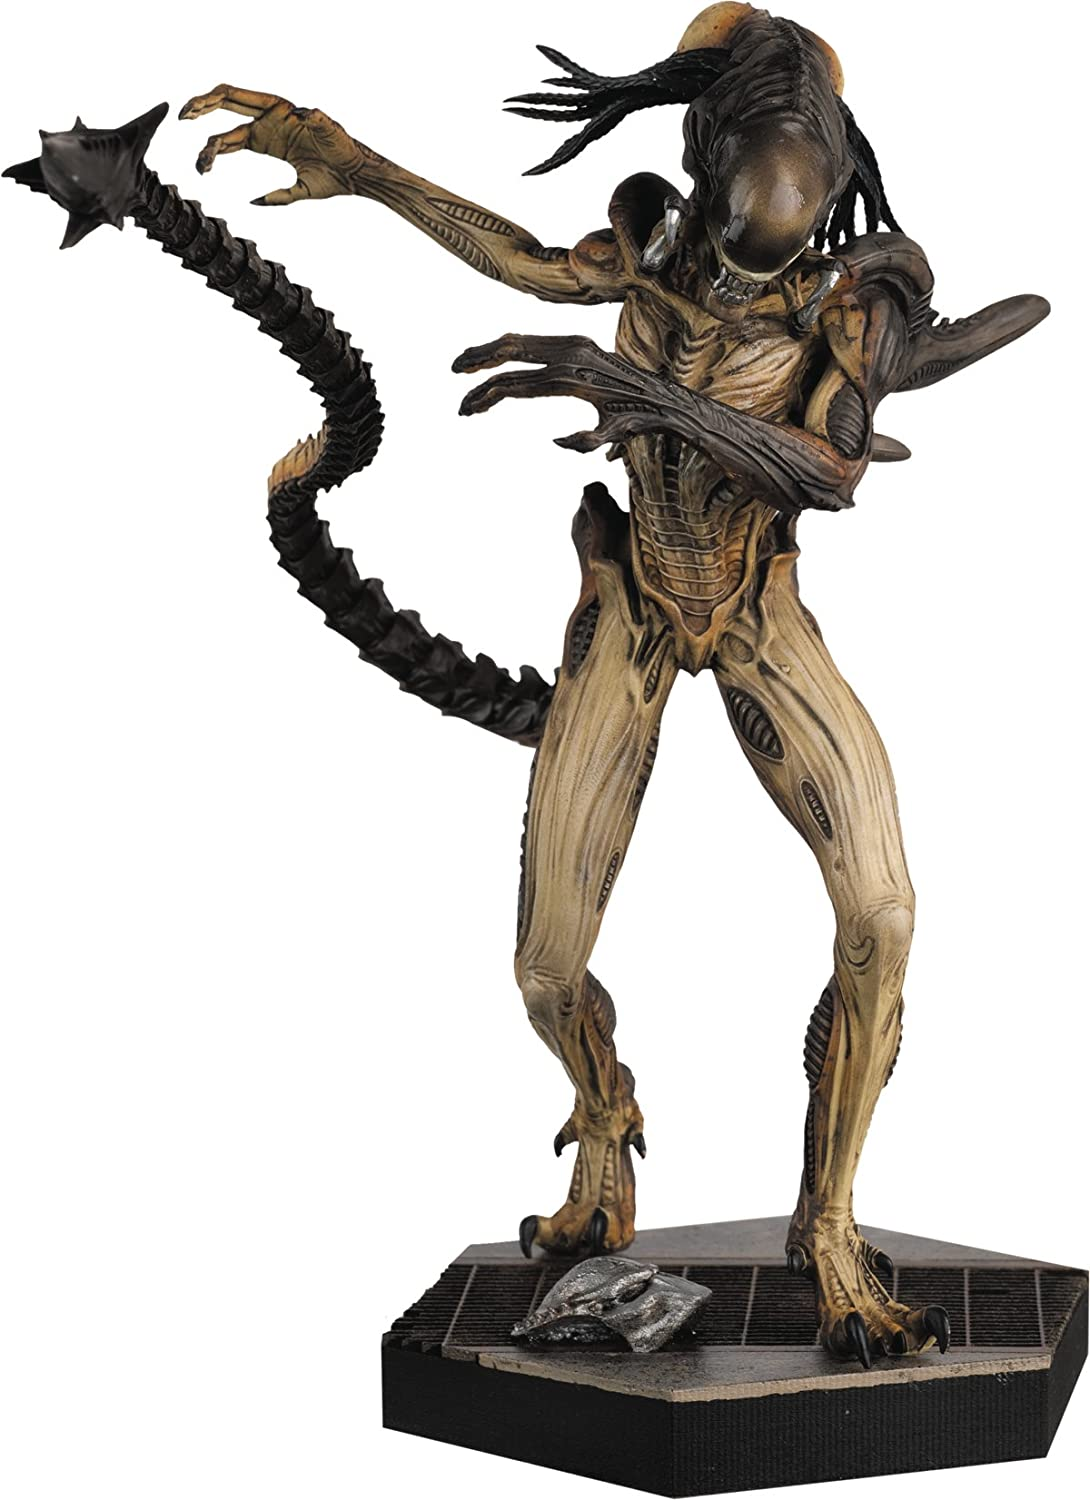 punto de venta de la marca The Alien  Predator Figurine Collection Predalien (Alien vs. vs. vs. Predator) 12 cm  productos creativos